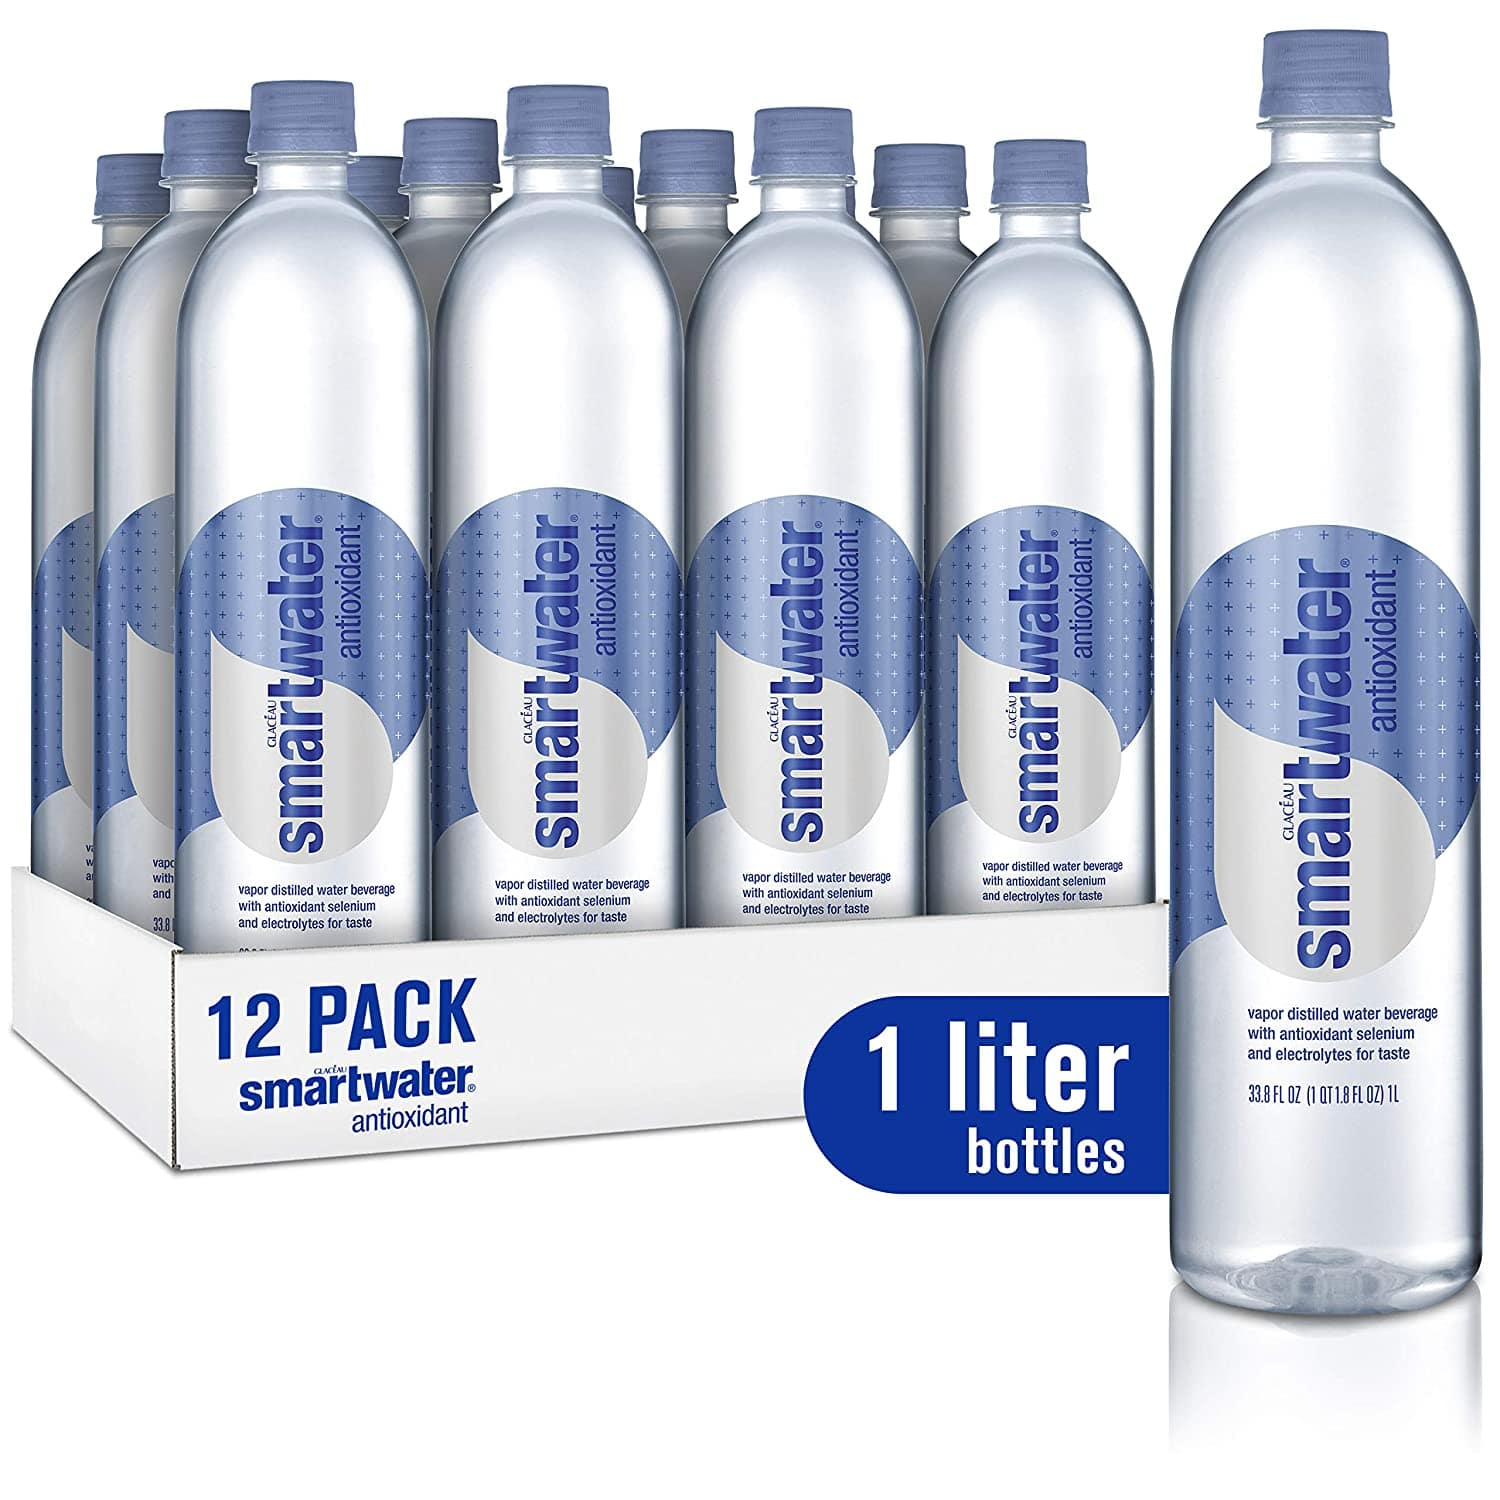 Amazon: Smartwater Antioxidant, 33.8 Fl Oz Bottles, Pack of 12 for $15.00 + $1.20 Bottle Fees. Free Shipping on Orders $25+